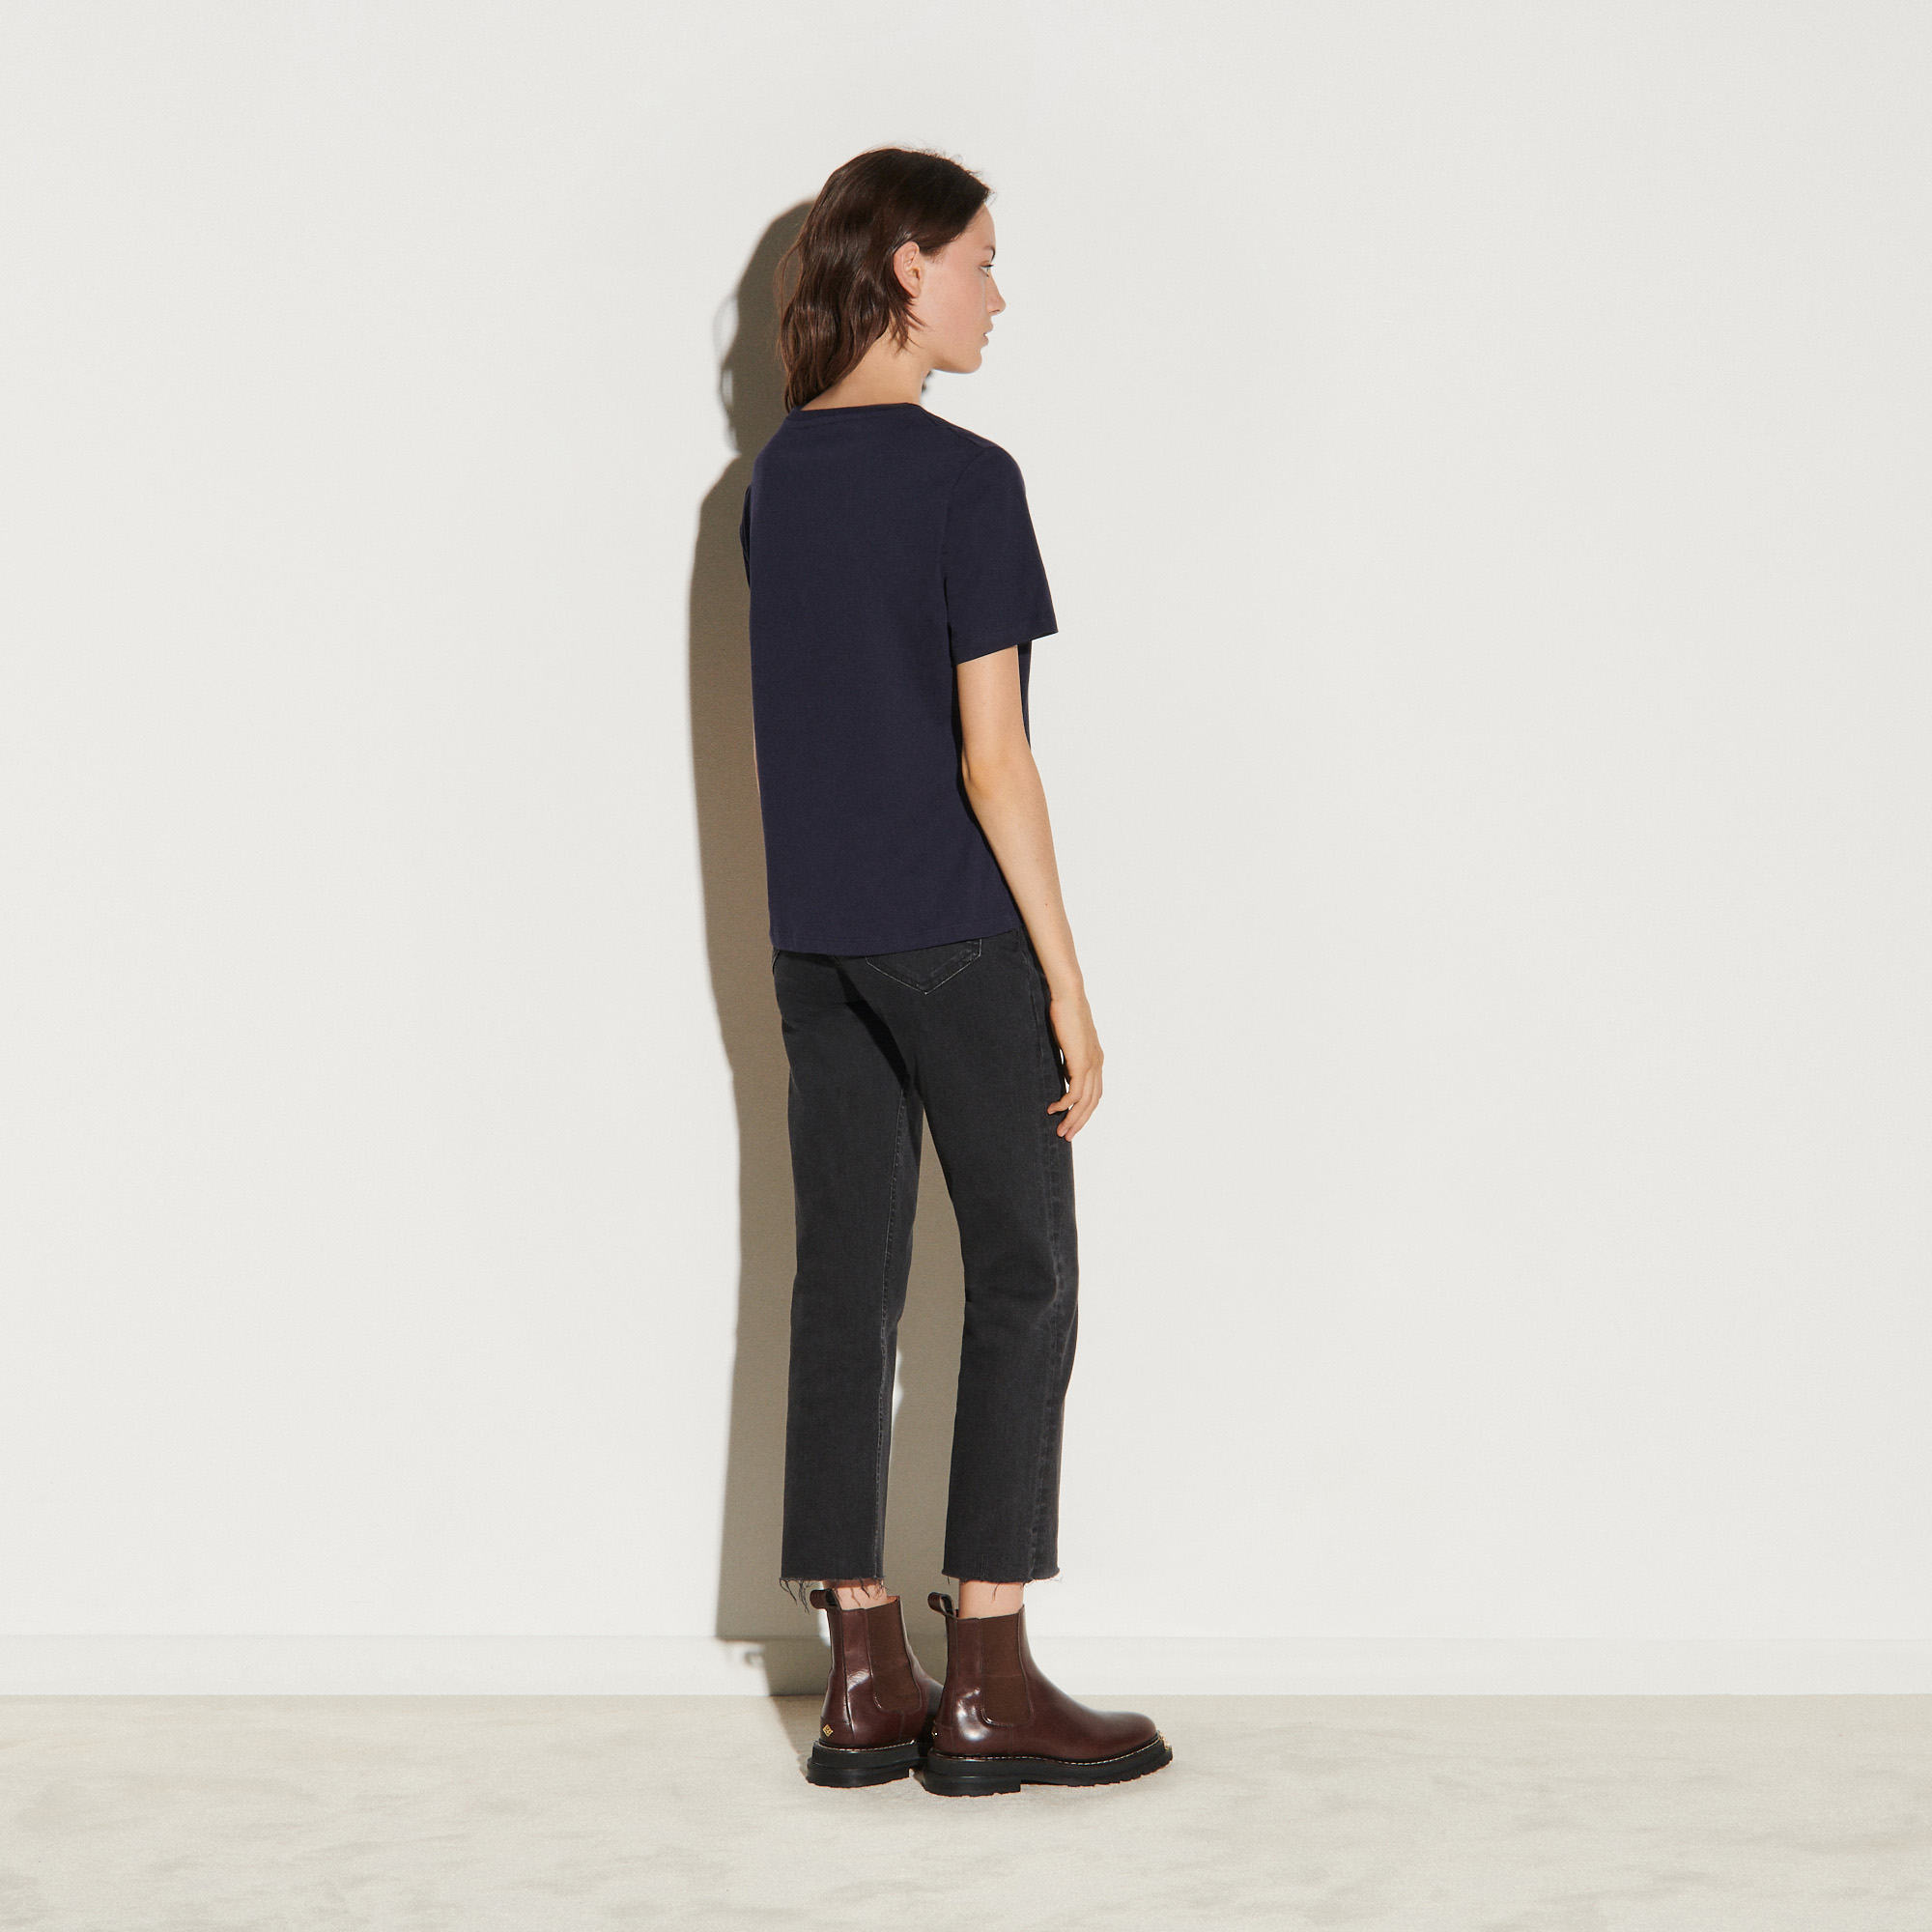 T shirt with tweed S patch - Navy